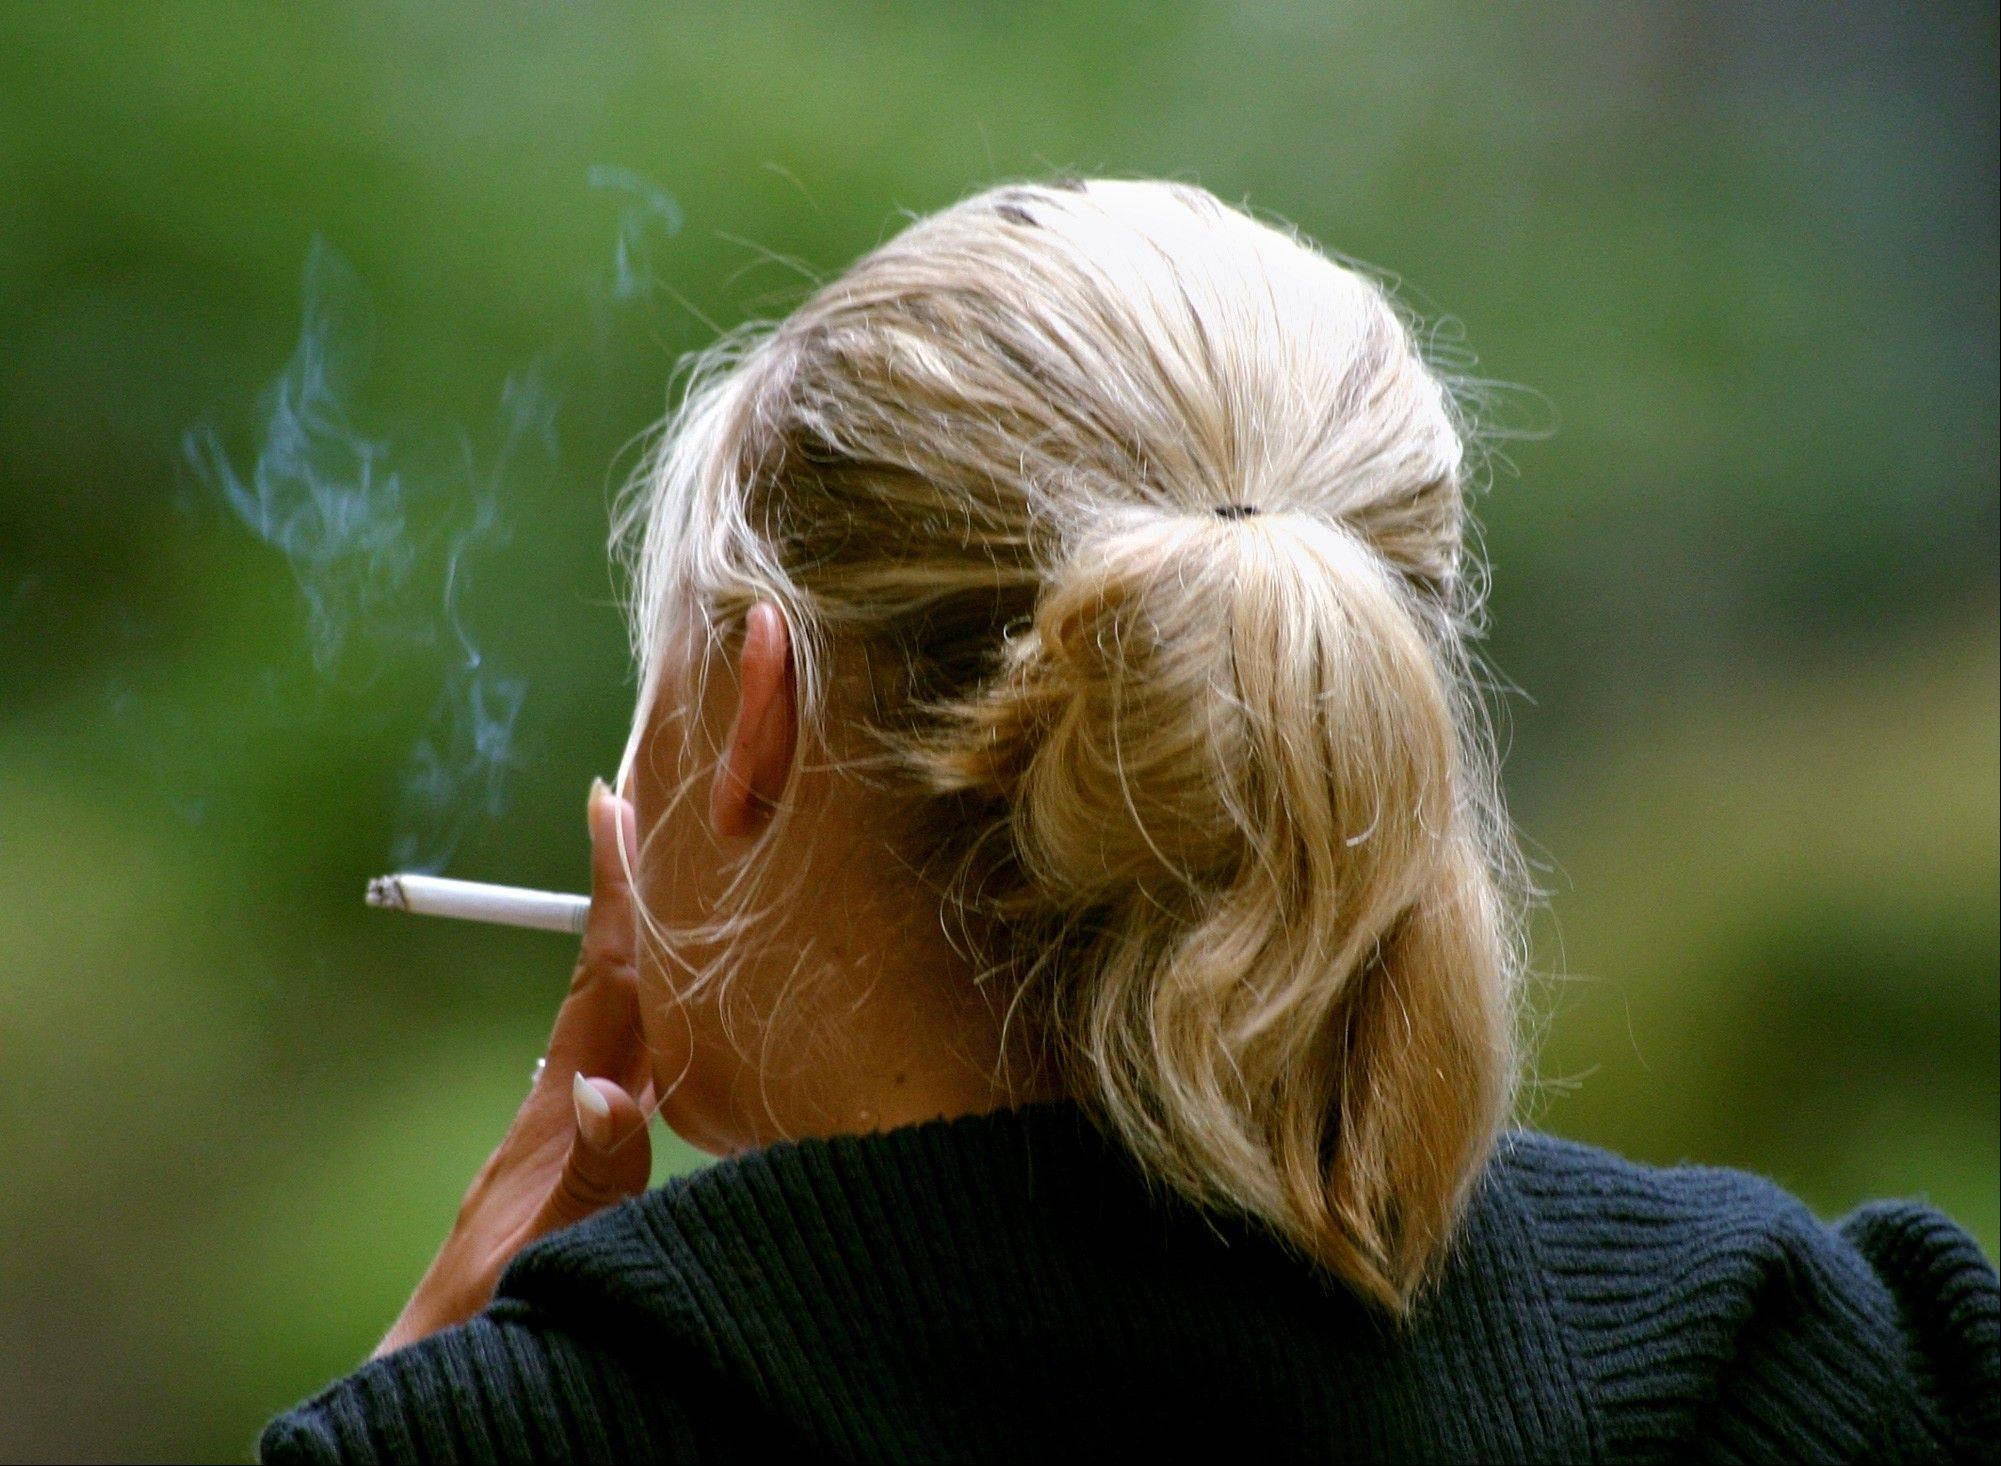 A woman smokes a cigarette during a break from work in downtown Chicago. New research published in the New England Journal of Medicine finds that women who smoke today have a much greater risk of dying from lung cancer than they did decades ago compared to those who never smoked.